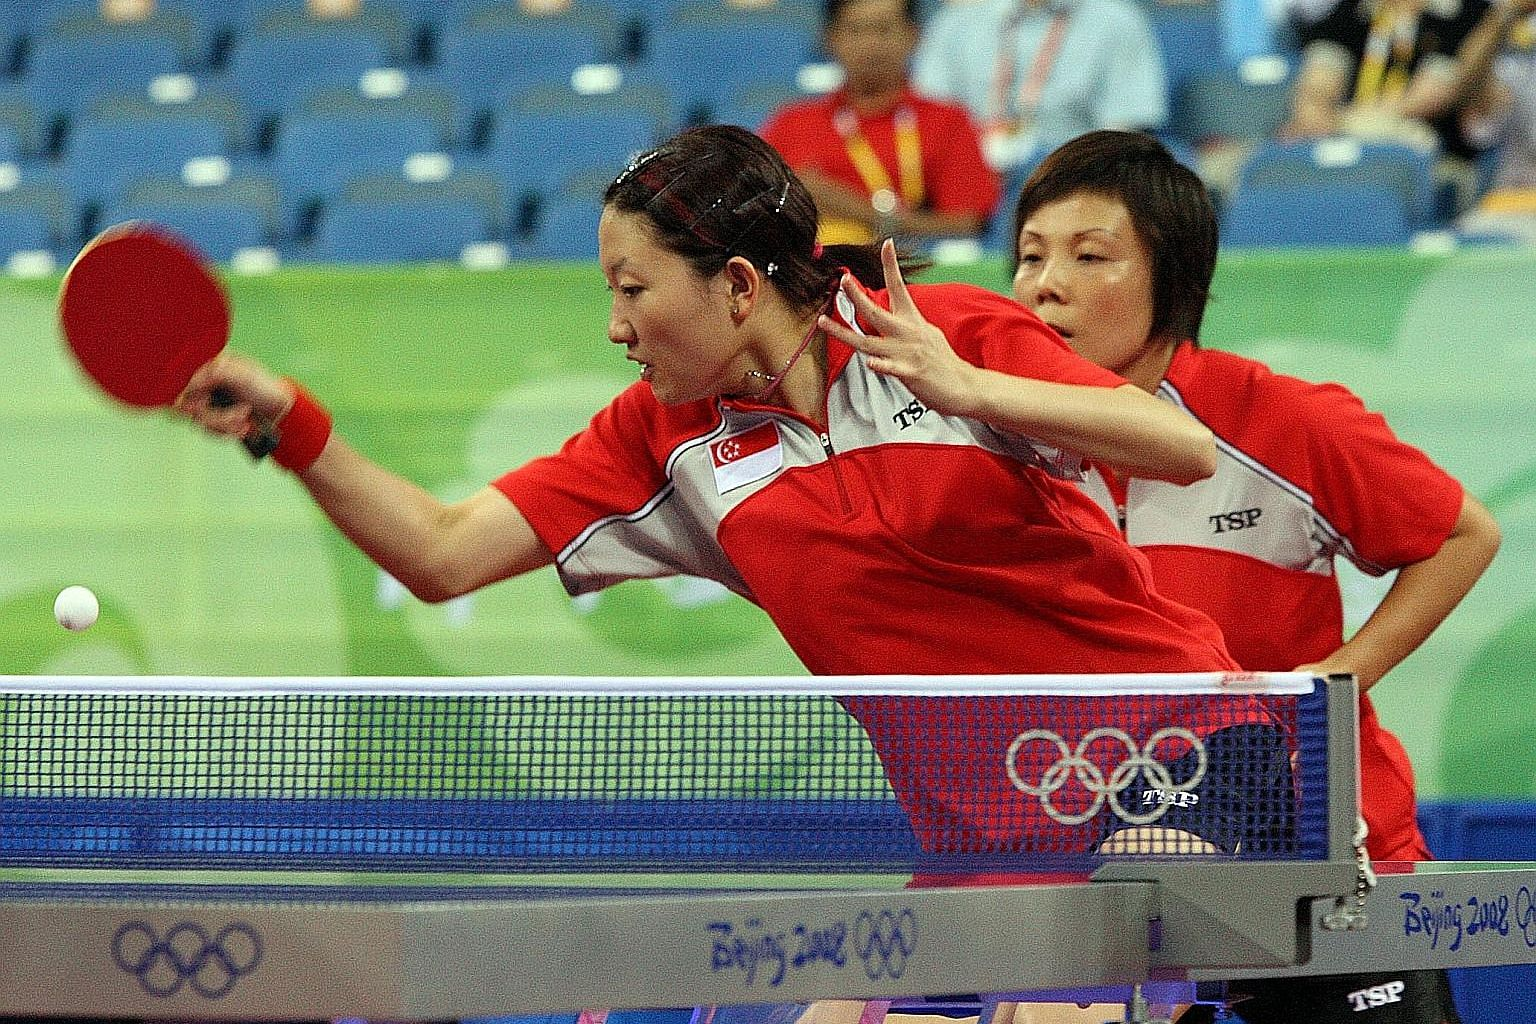 Li Jiawei (front) and Wang Yuegu on the way to winning their match to help Singapore to a 3-2 victory over South Korea in the semi-finals of the Beijing Olympics.